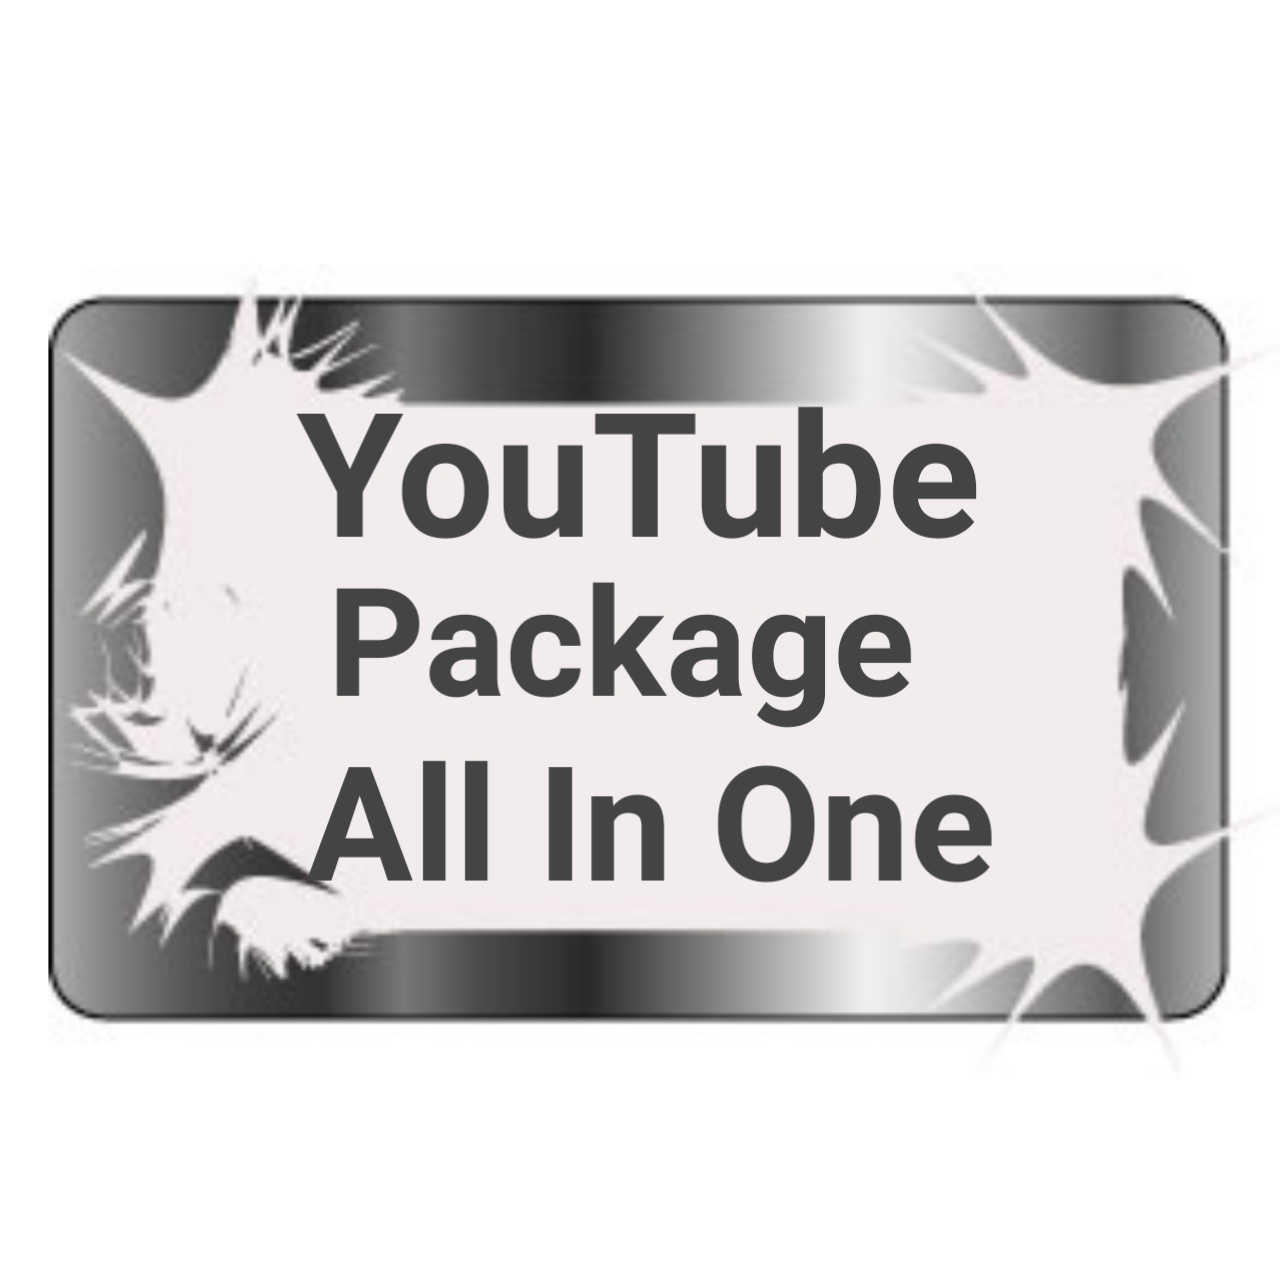 Promotion package for YouTube very fast delivery